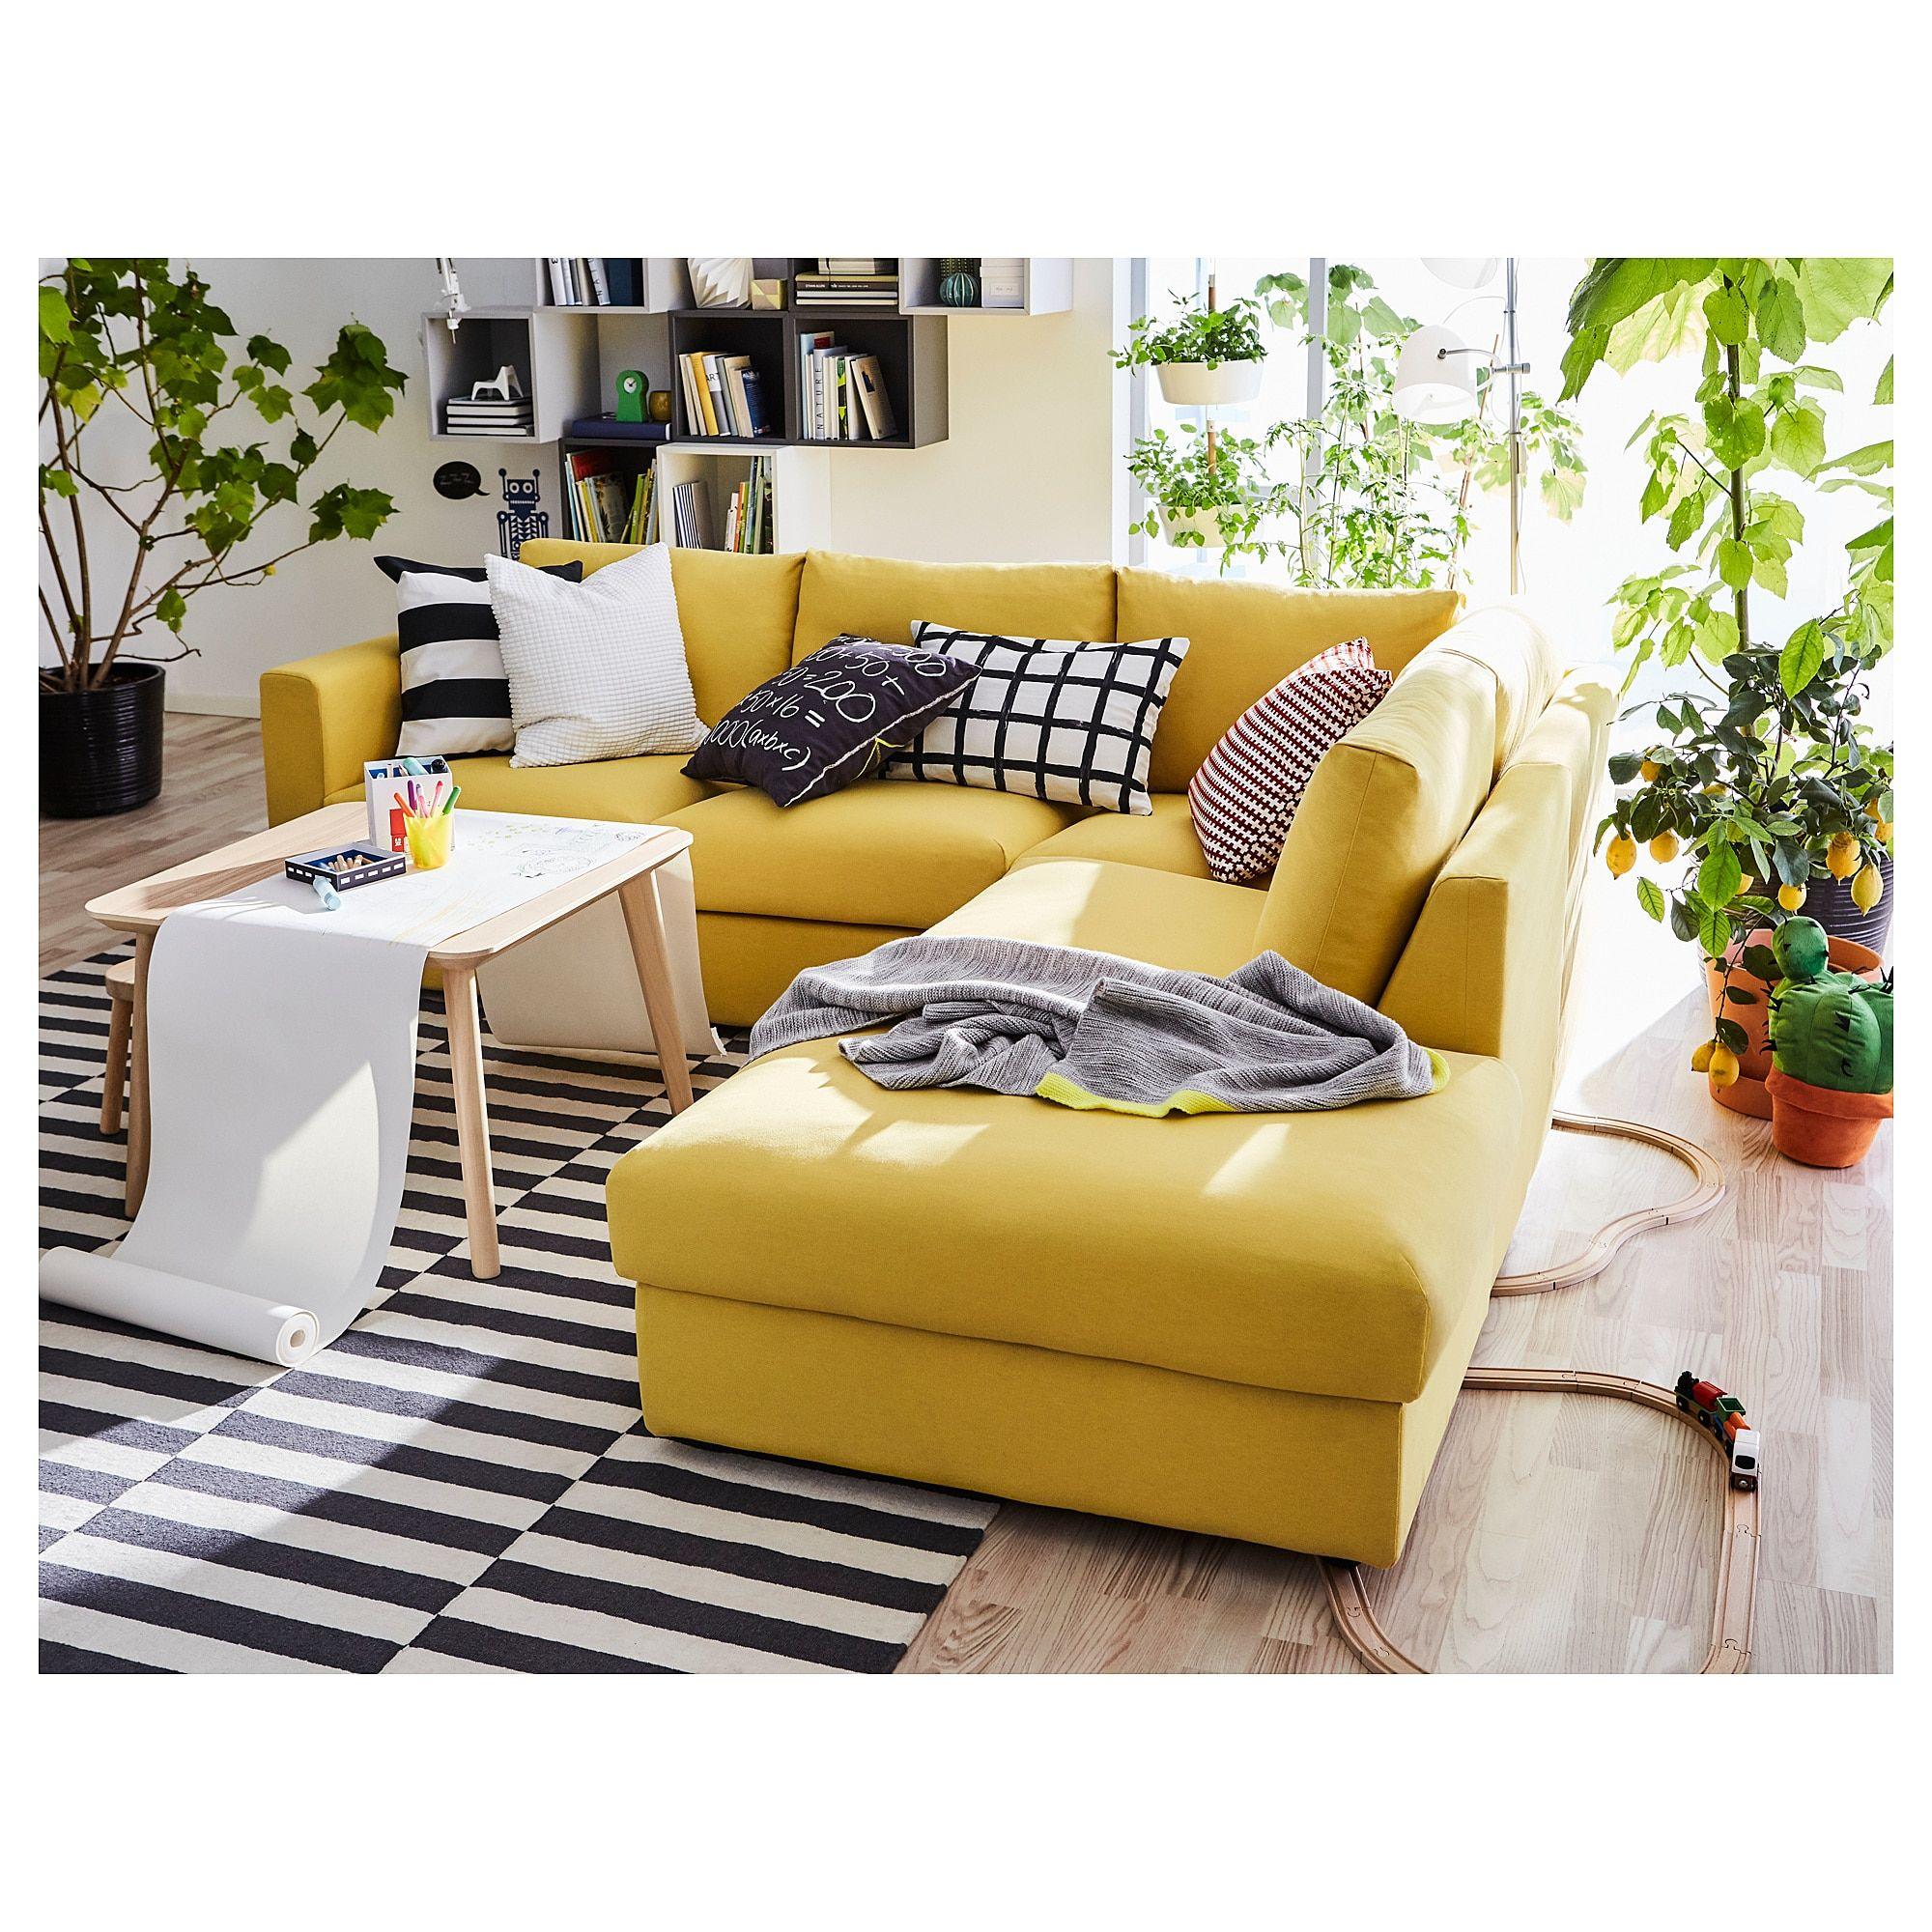 Furniture and Home Furnishings Living room sofa, Yellow